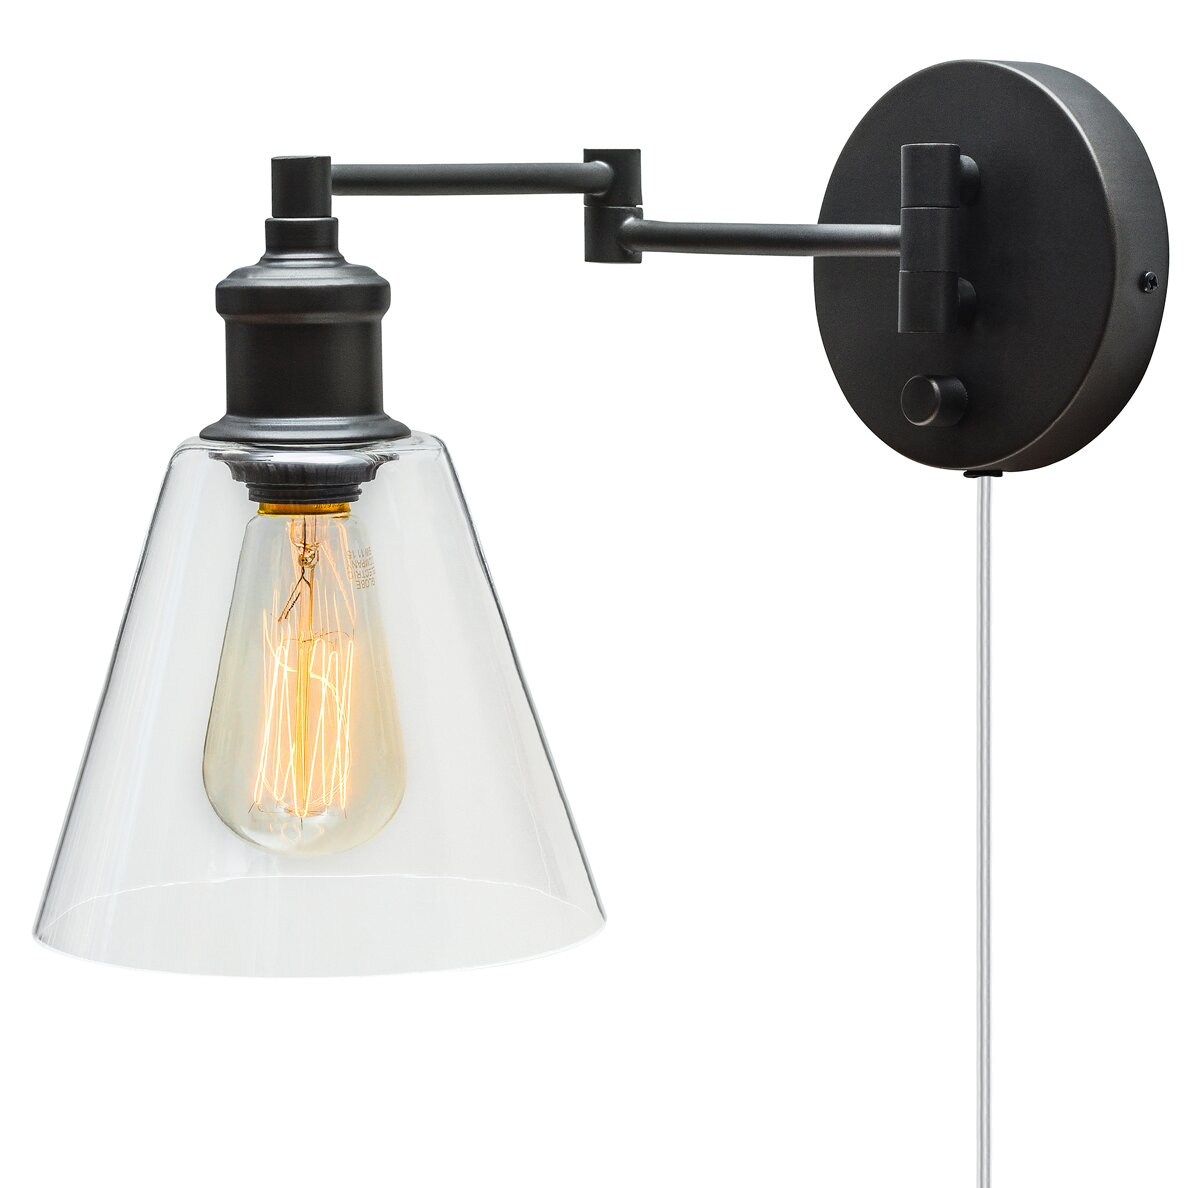 Wall Sconces Plug In Lighting : Globe Electric Company Adison 1 Light Plug In Industrial Wall Sconce with Hardwire Conversion ...